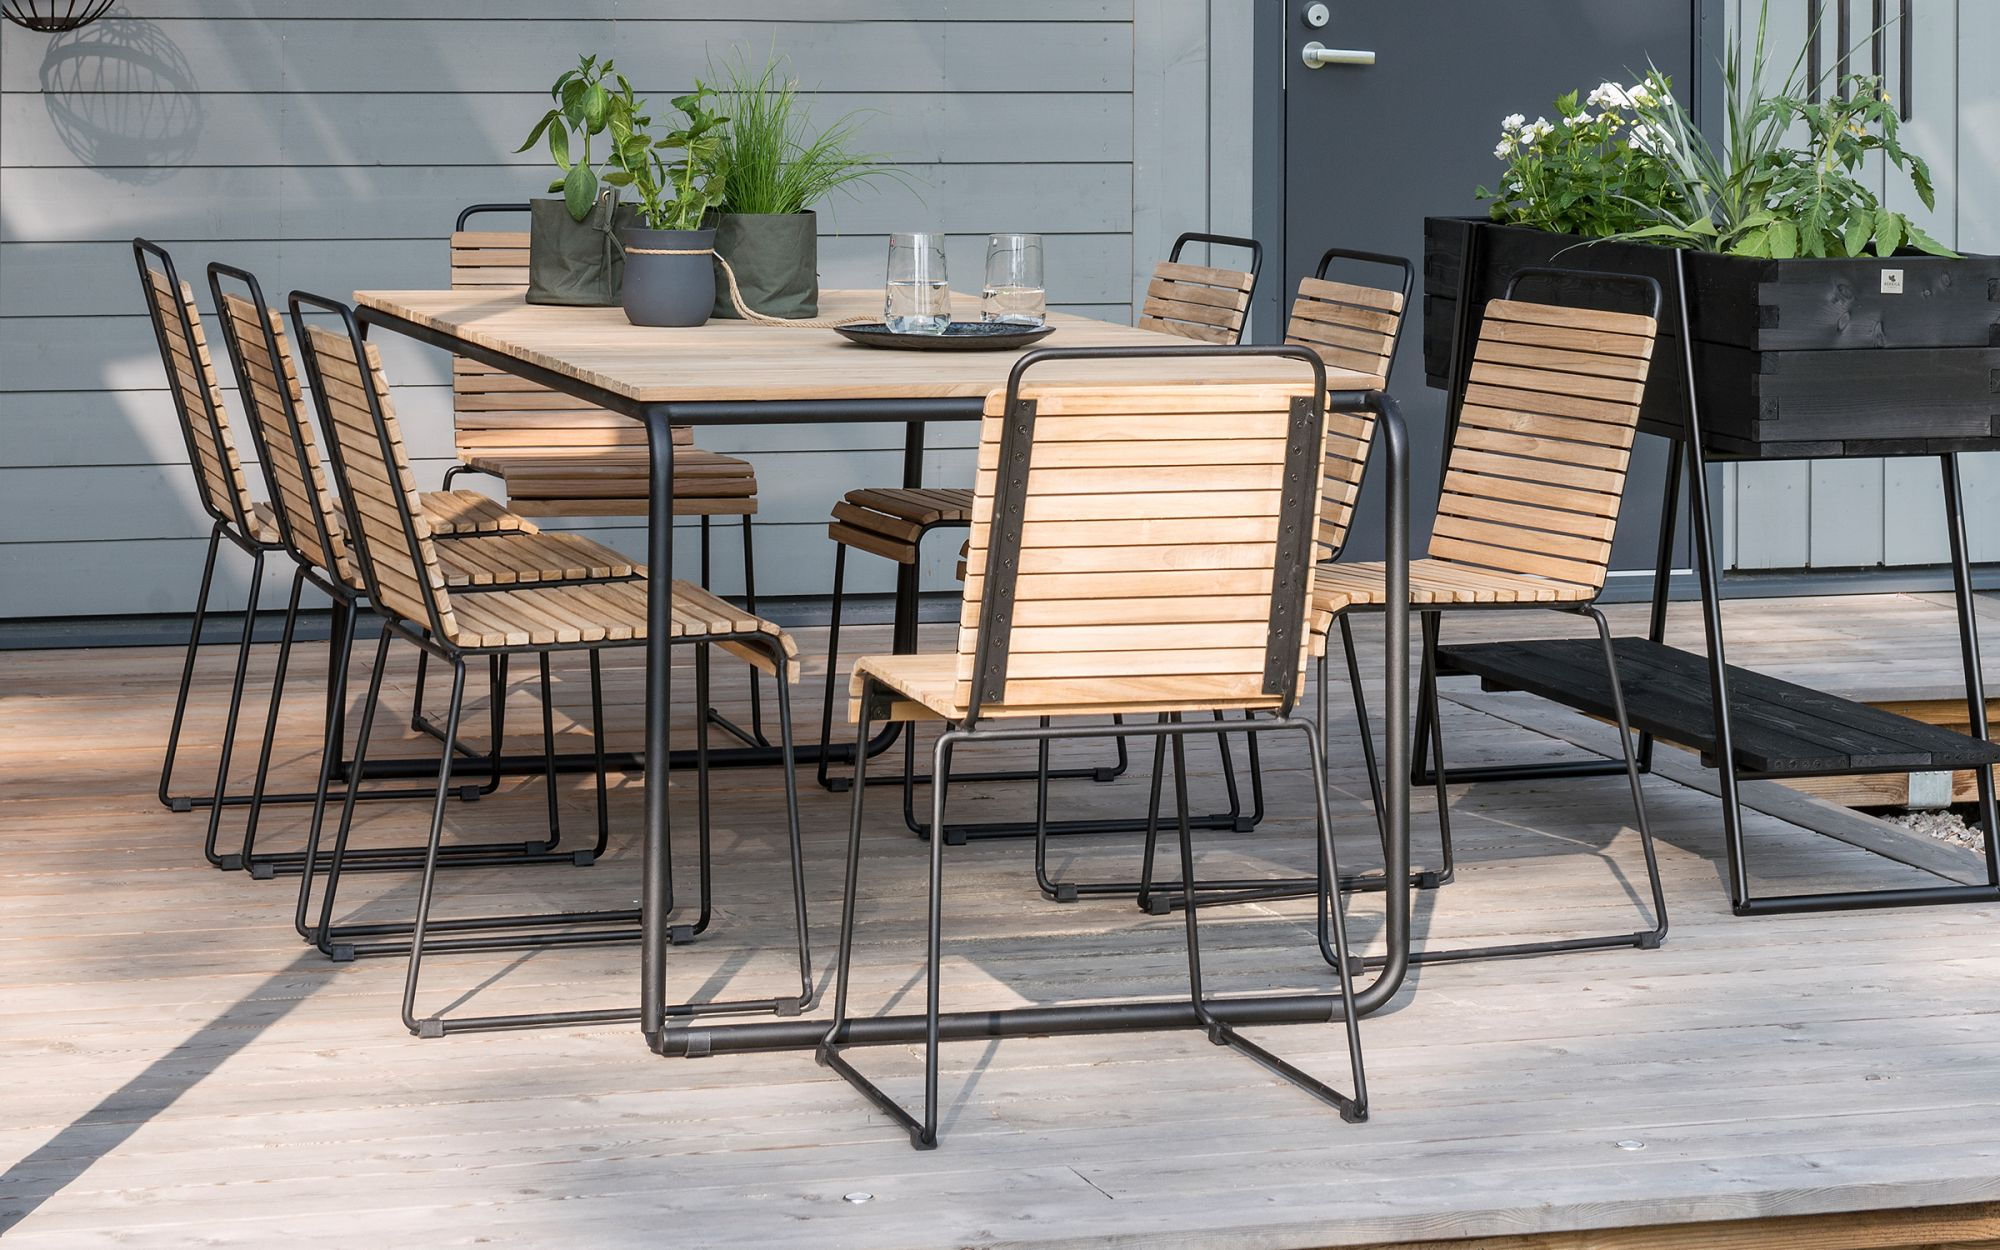 DiningTable-chairs-Casual-2